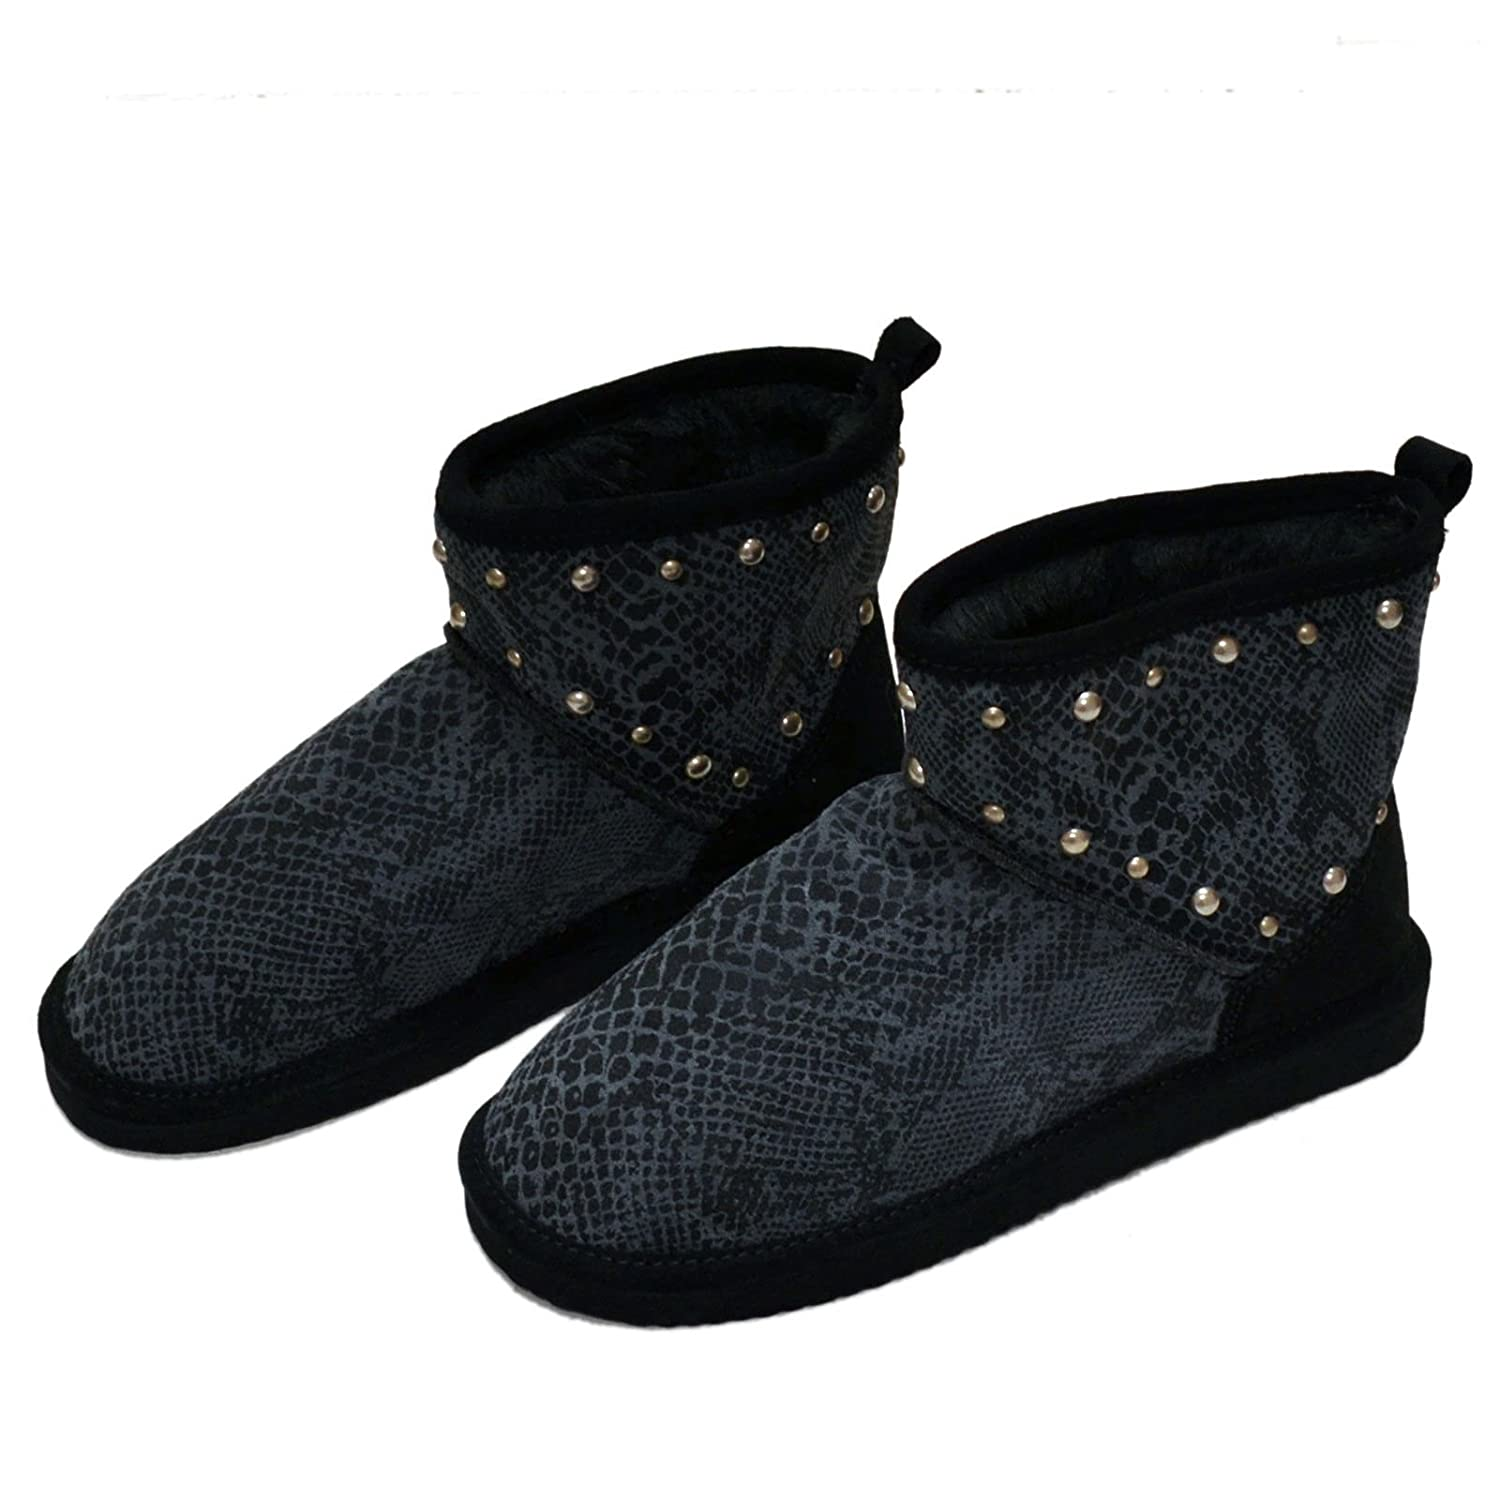 b78a15e5b0f4b Victoria's Secret Pink Fur Lined Bootie Mukluks Boots Shoes with Bling  Sequins Studs